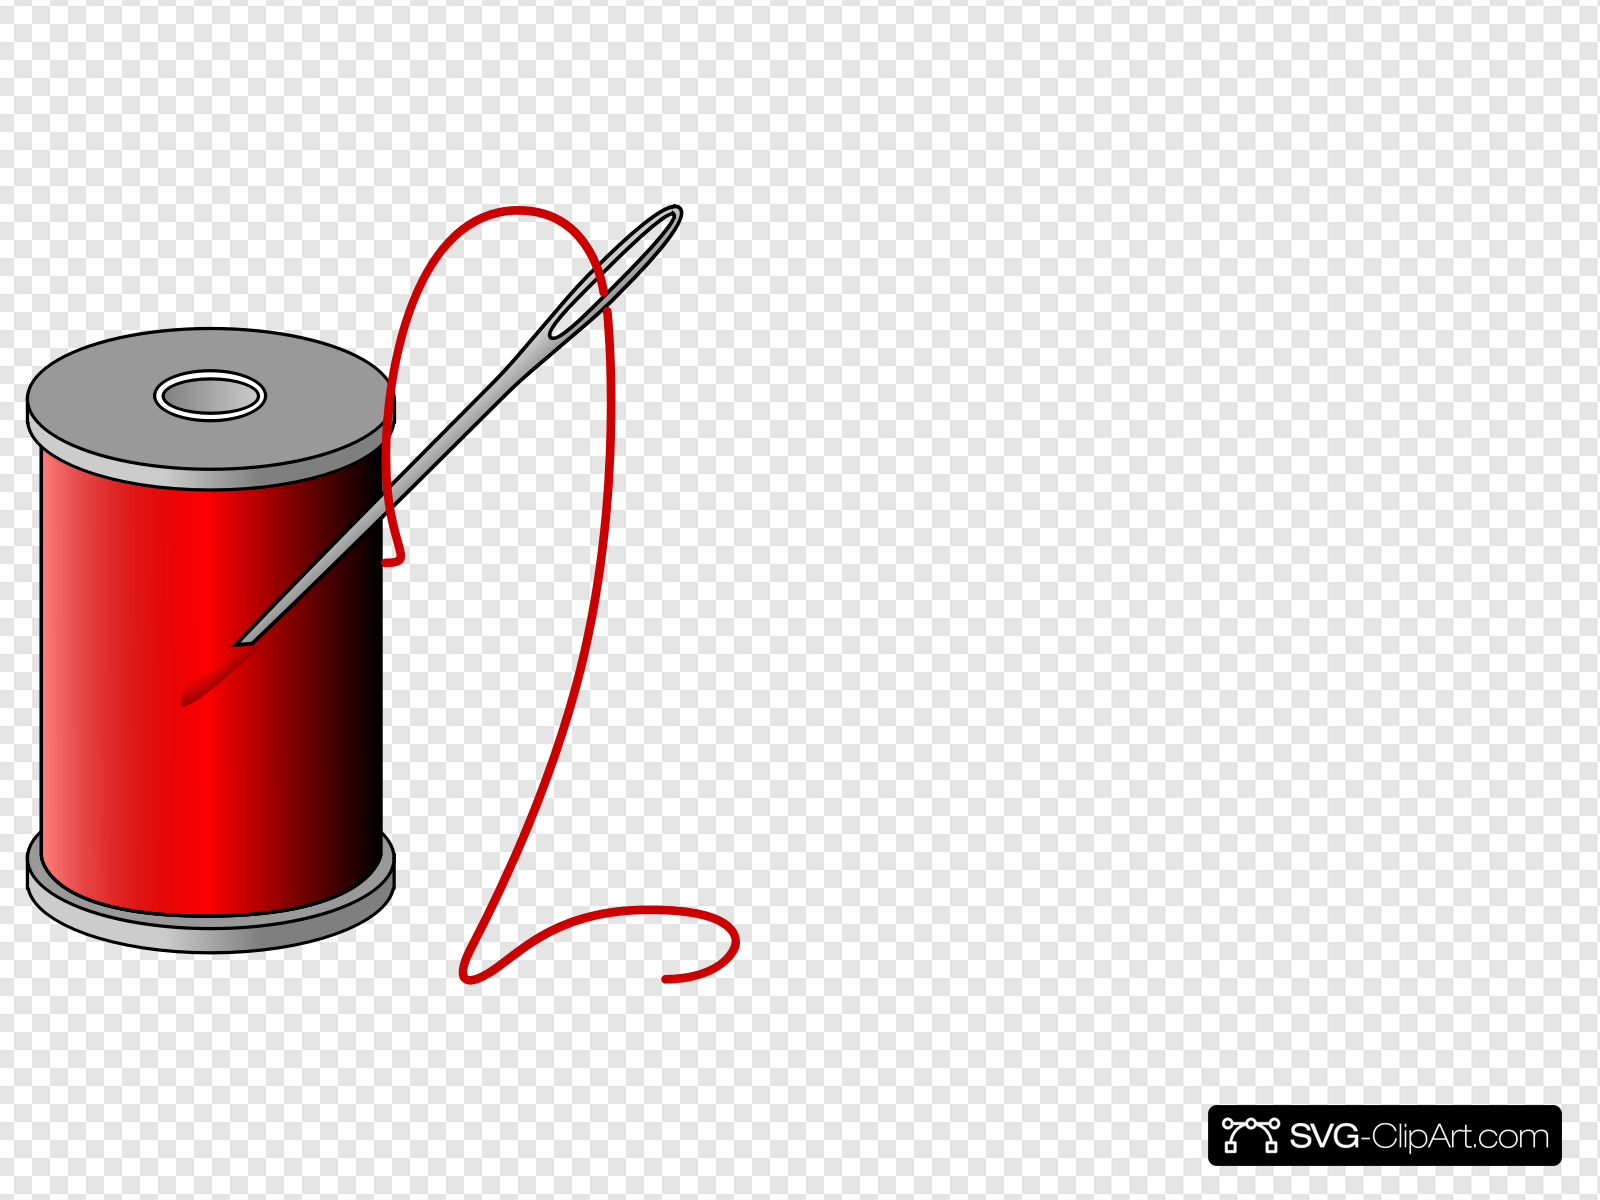 Spool Of Thread Clip art, Icon and SVG.